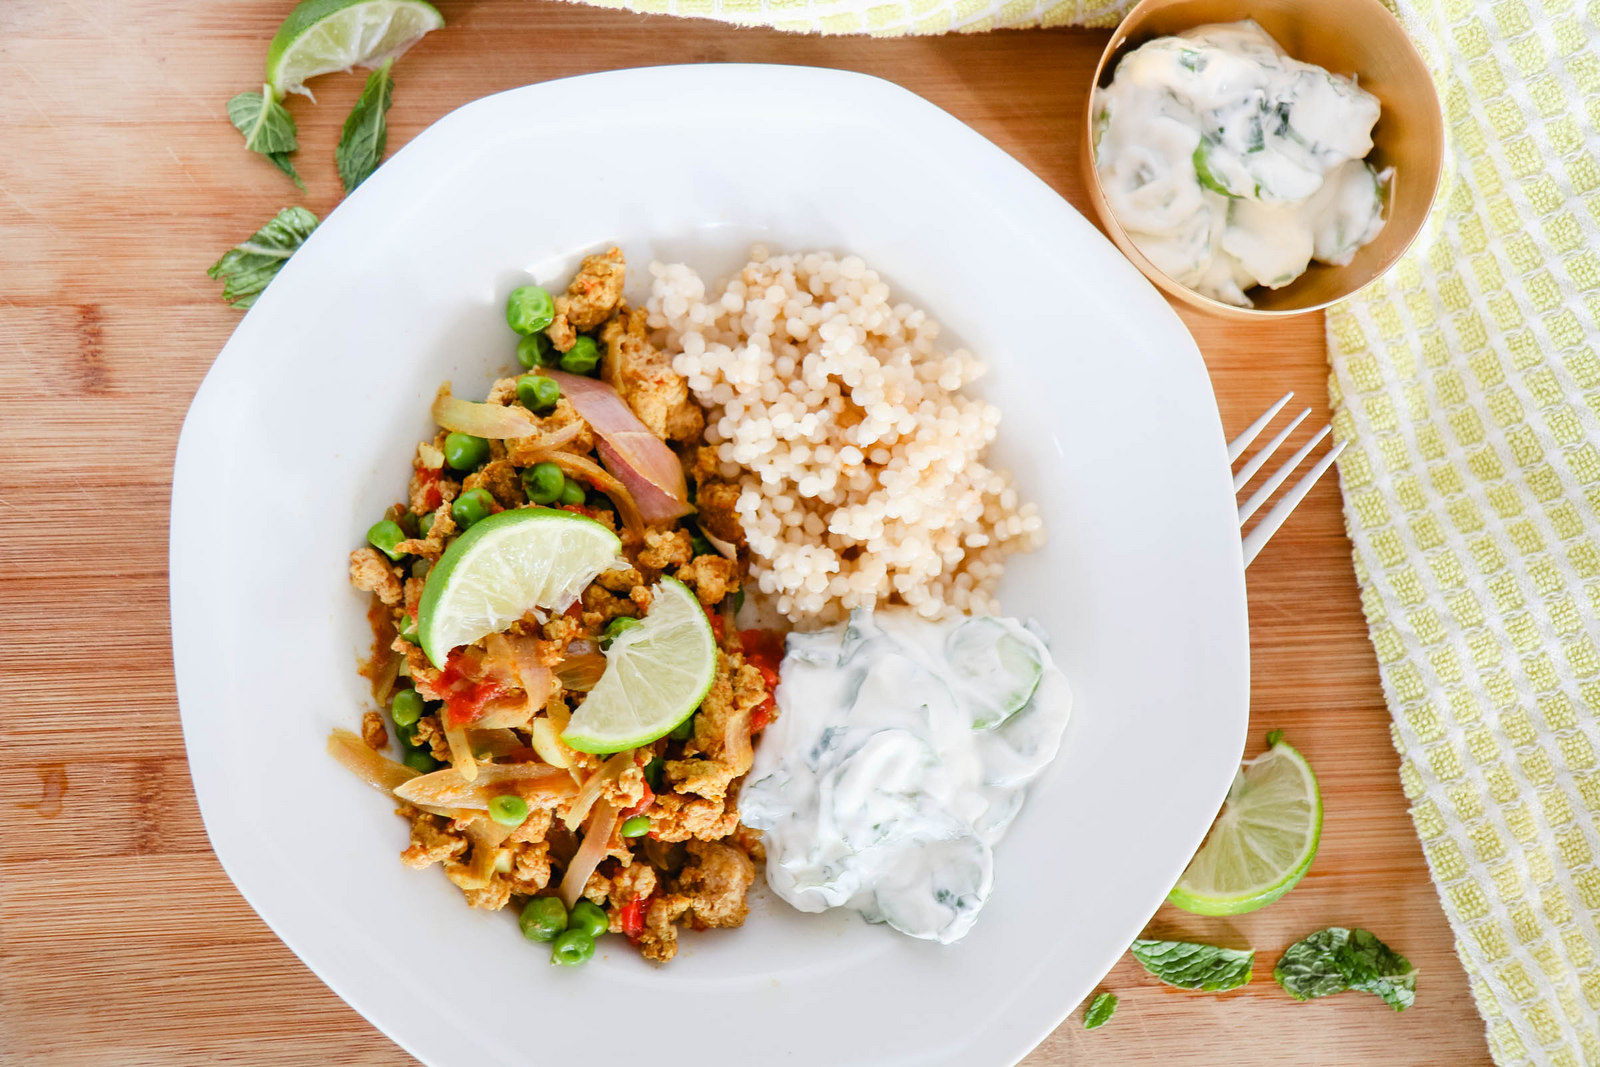 Turkey keema with cucumber raita